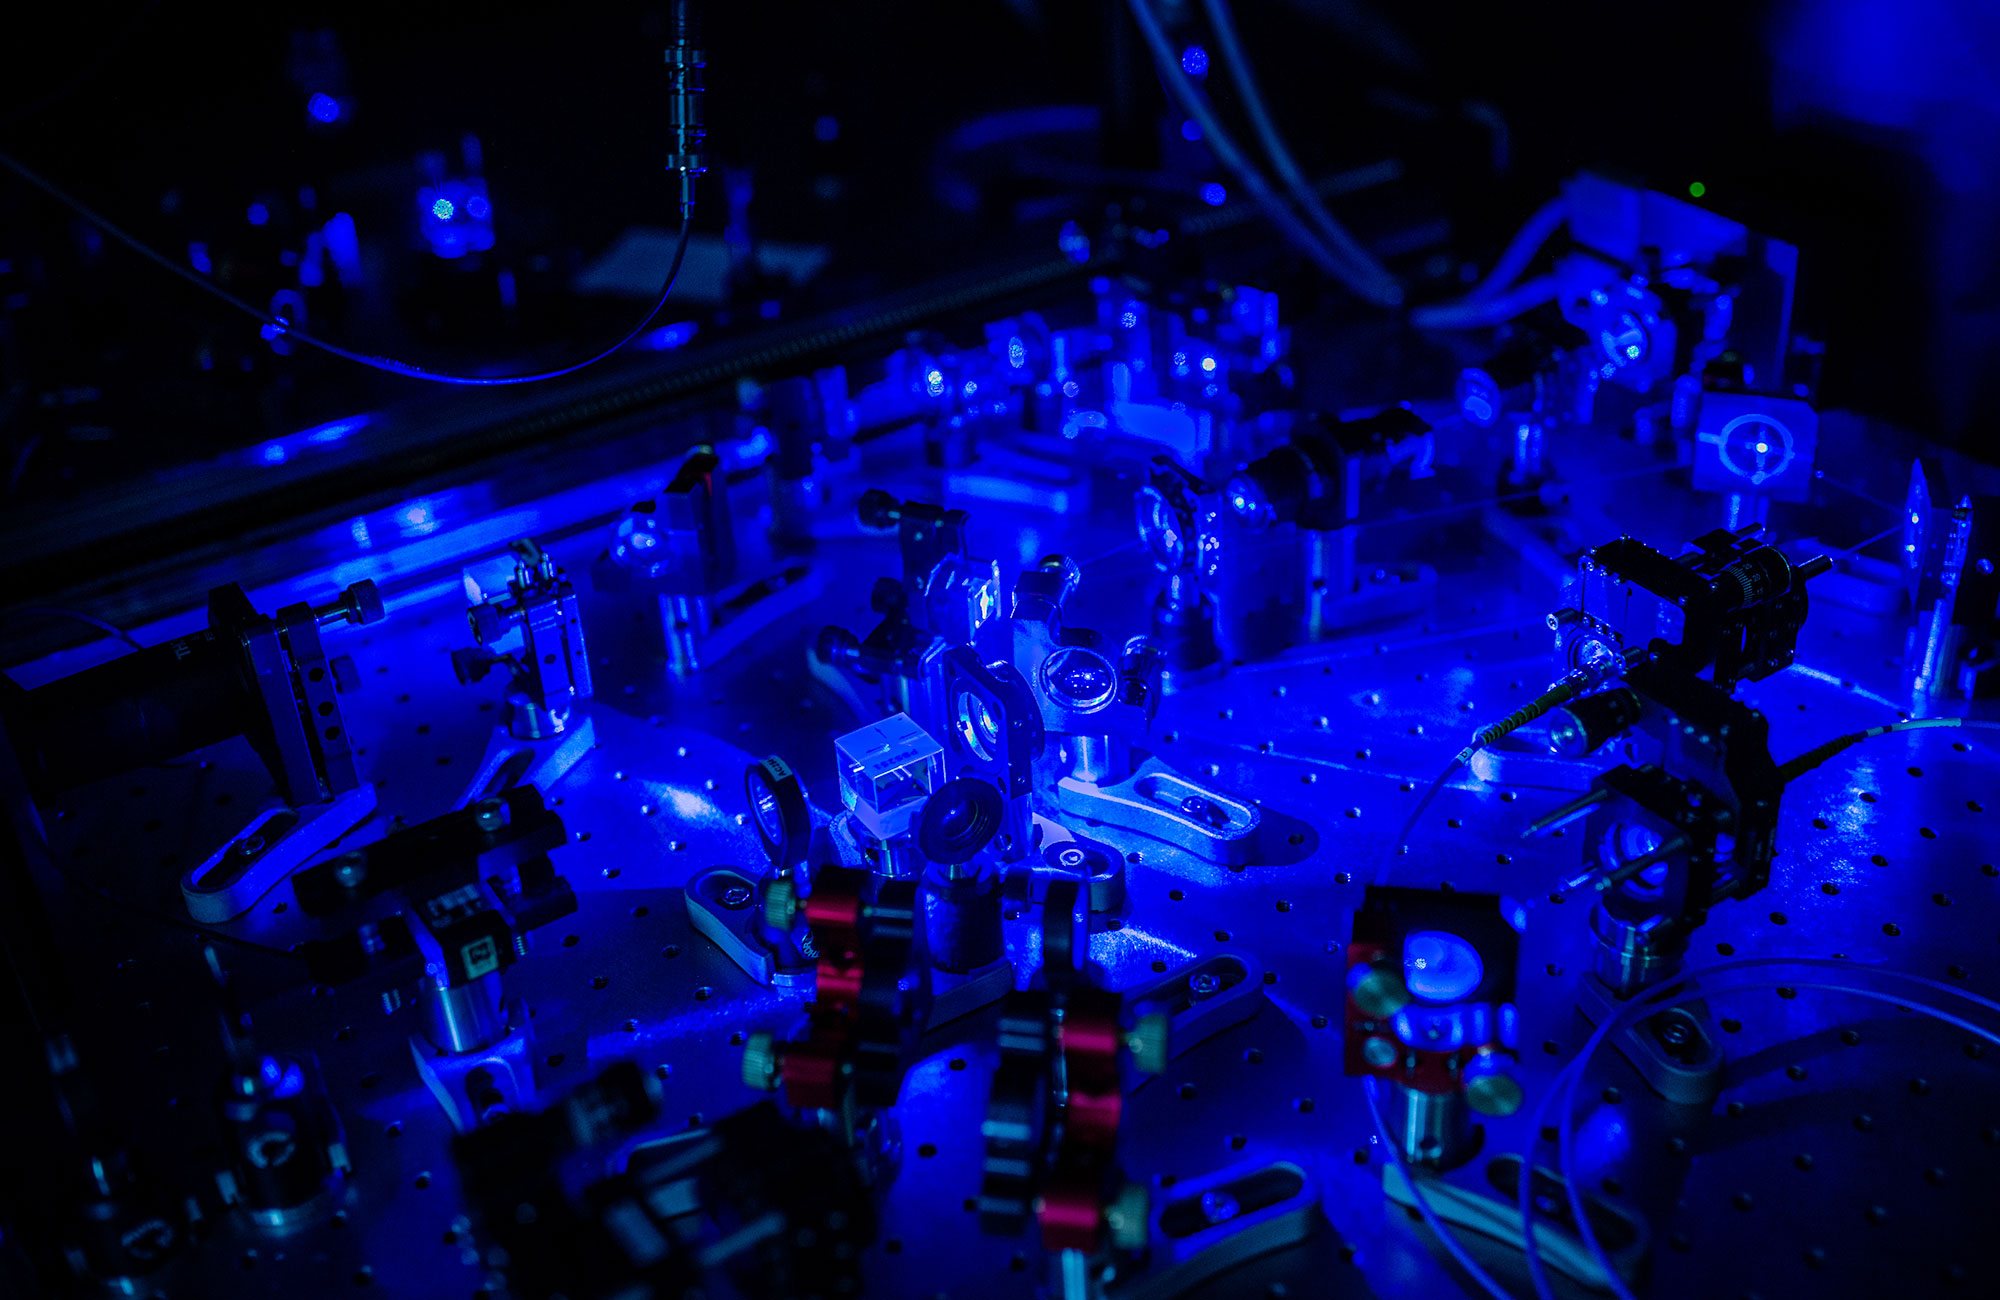 Quantum Scarring Appears to Defy Universe's Push for Disorder